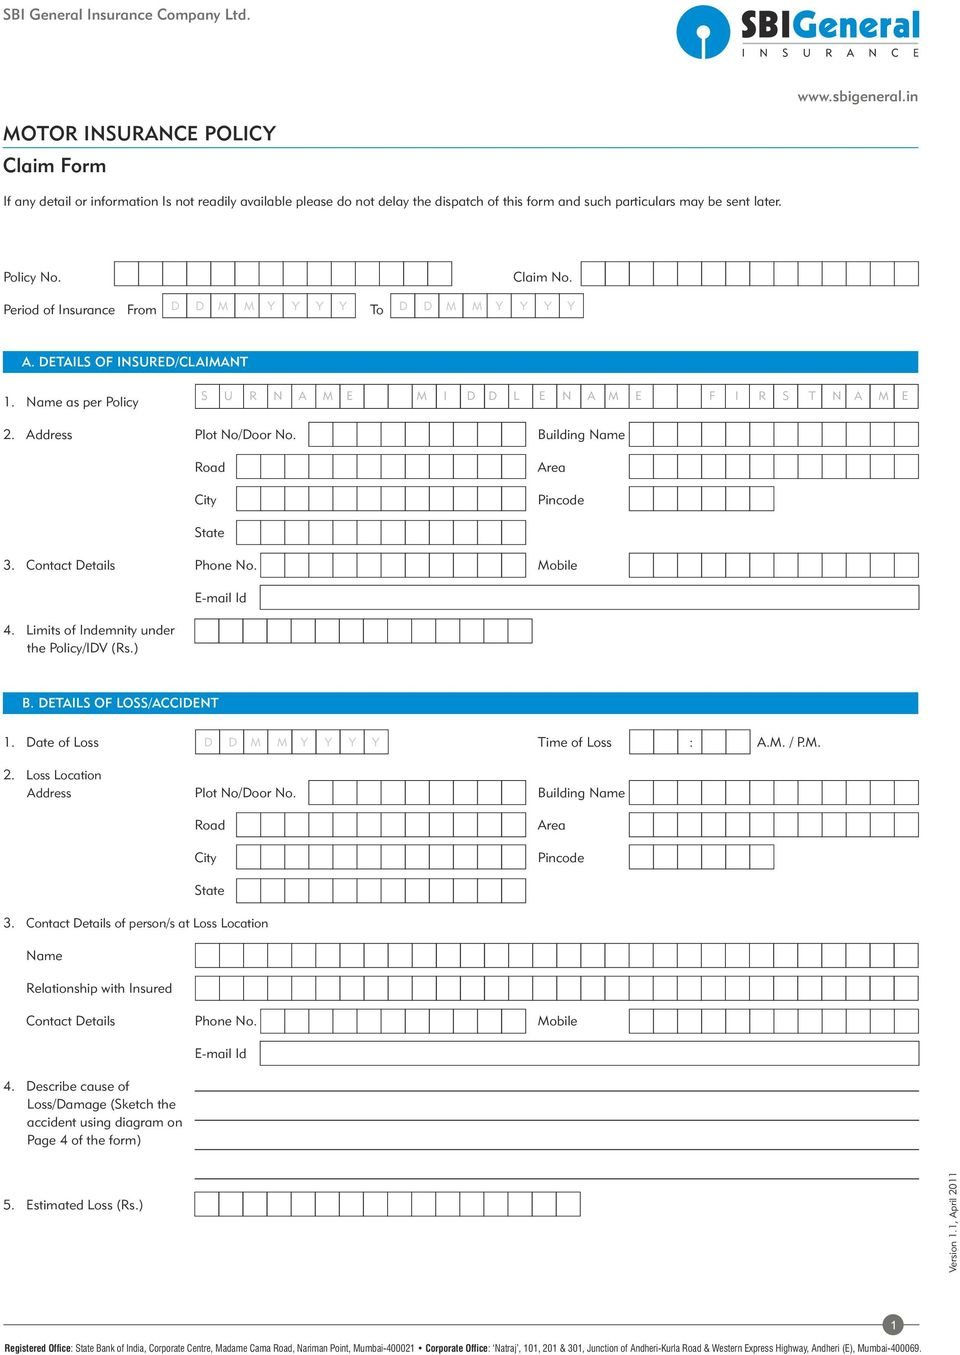 Period of Insurance From To A. DETAILS OF INSURED/CLAIMANT 1. Name as per Policy 2. 3. 4. Limits of Indemnity under the Policy/IDV (Rs.) B. DETAILS OF LOSS/ACCIDENT 1. Date of Loss Time of Loss : A.M. / P.